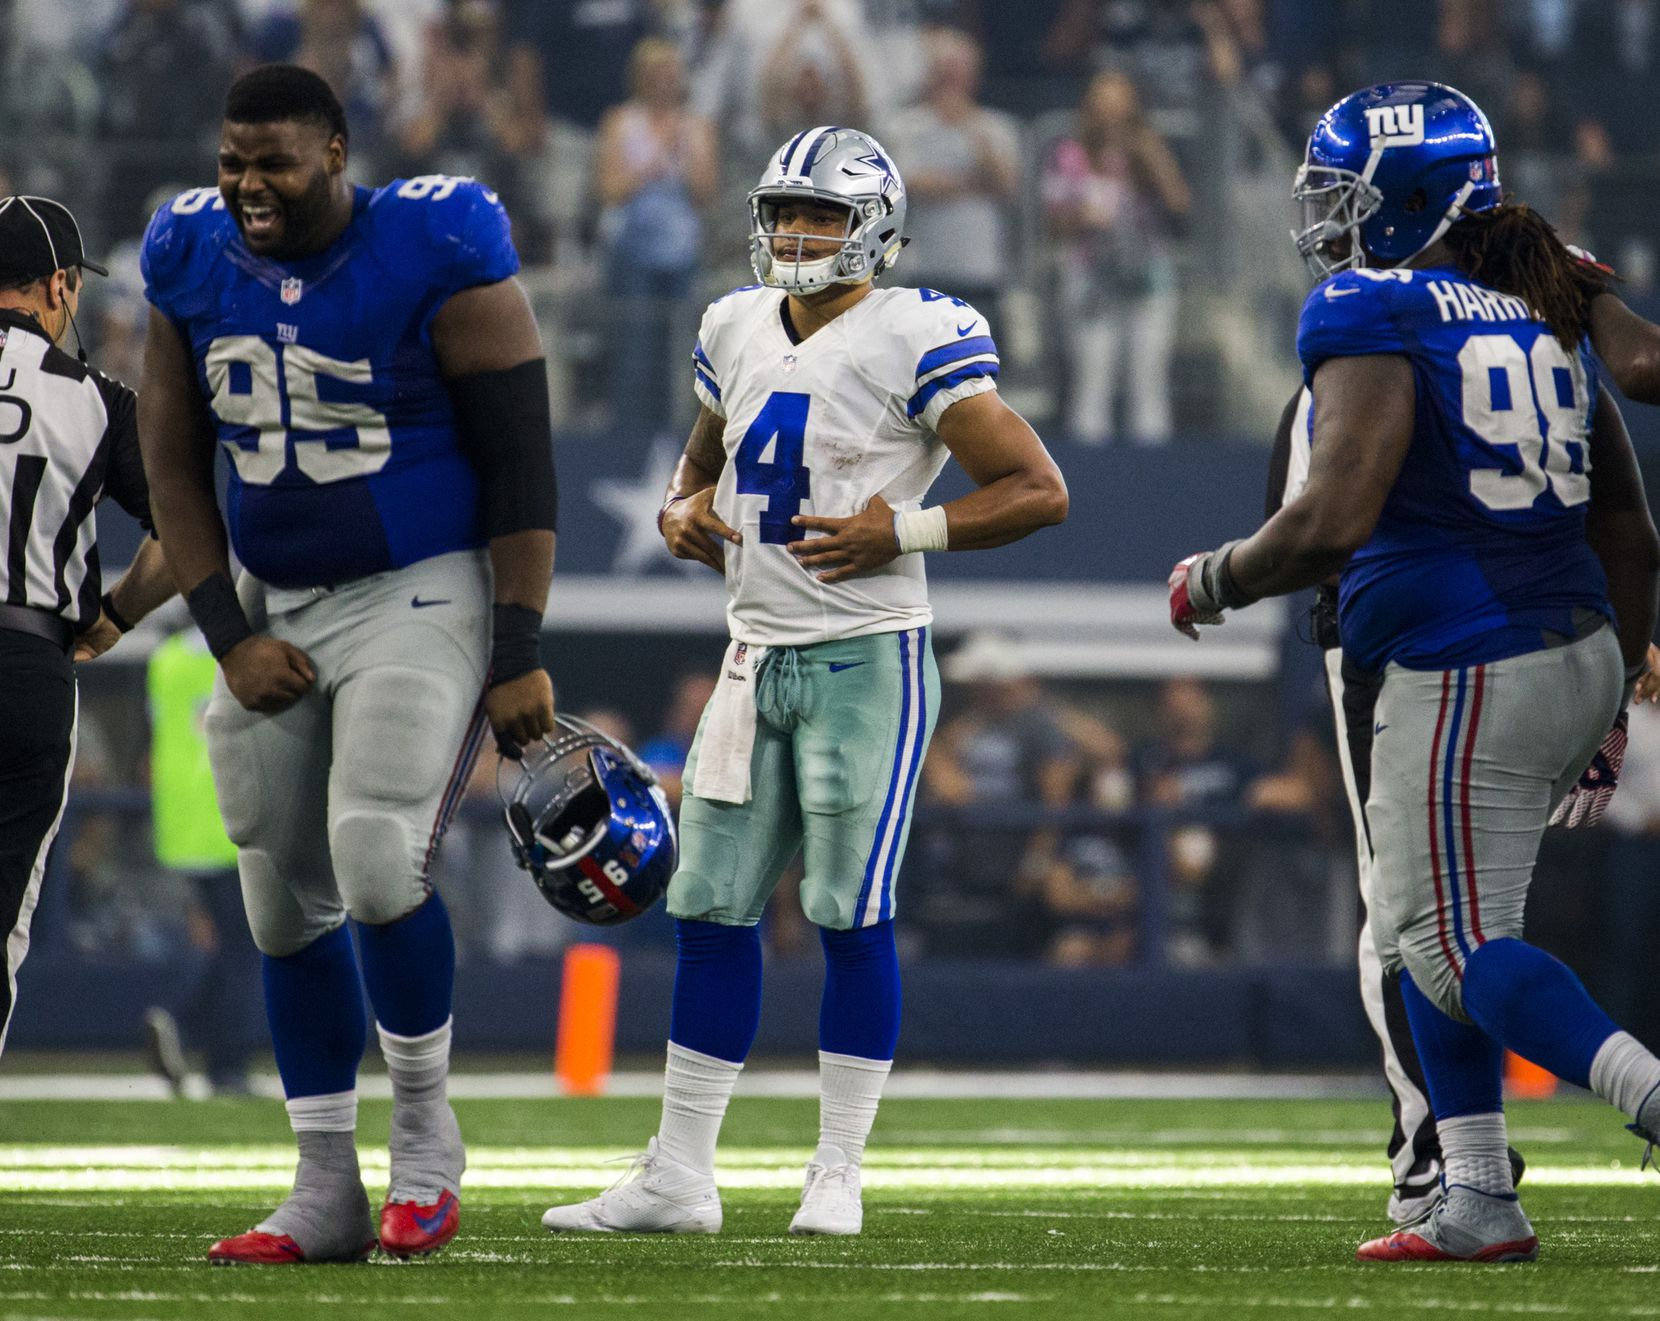 Dallas Cowboys quarterback Dak Prescott (4) watches as New York Giants defensive tackle Johnathan Hankins (95) and defensive tackle Damon Harrison (98) celebrate a 20-19 win after the clock ran out on their game on Sunday, September 11, 2016 at AT&T Stadium in Arlington, Texas.